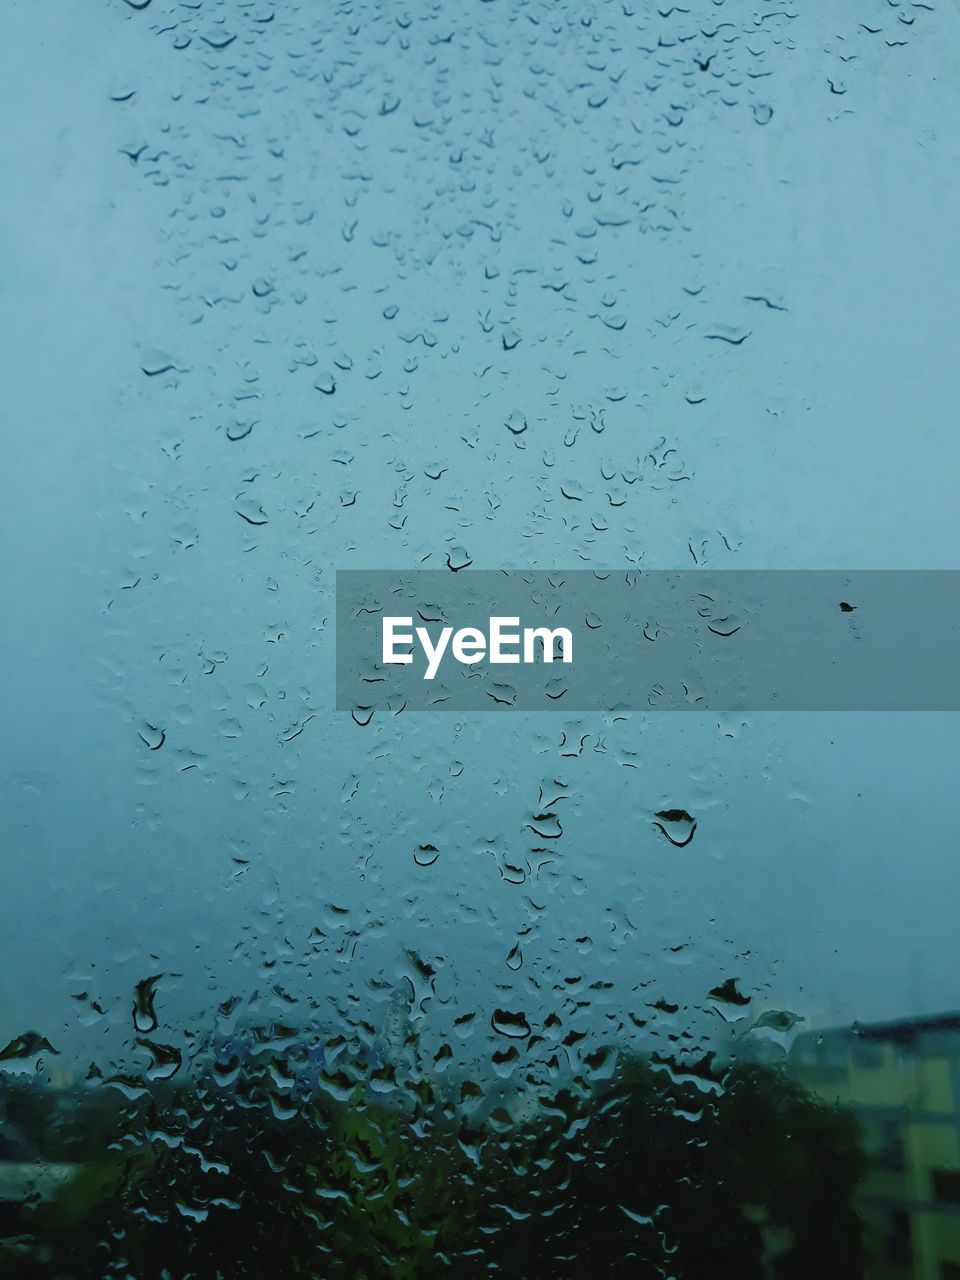 water, drop, wet, transparent, glass - material, window, rain, nature, no people, close-up, sky, day, indoors, backgrounds, raindrop, full frame, focus on foreground, rainy season, glass